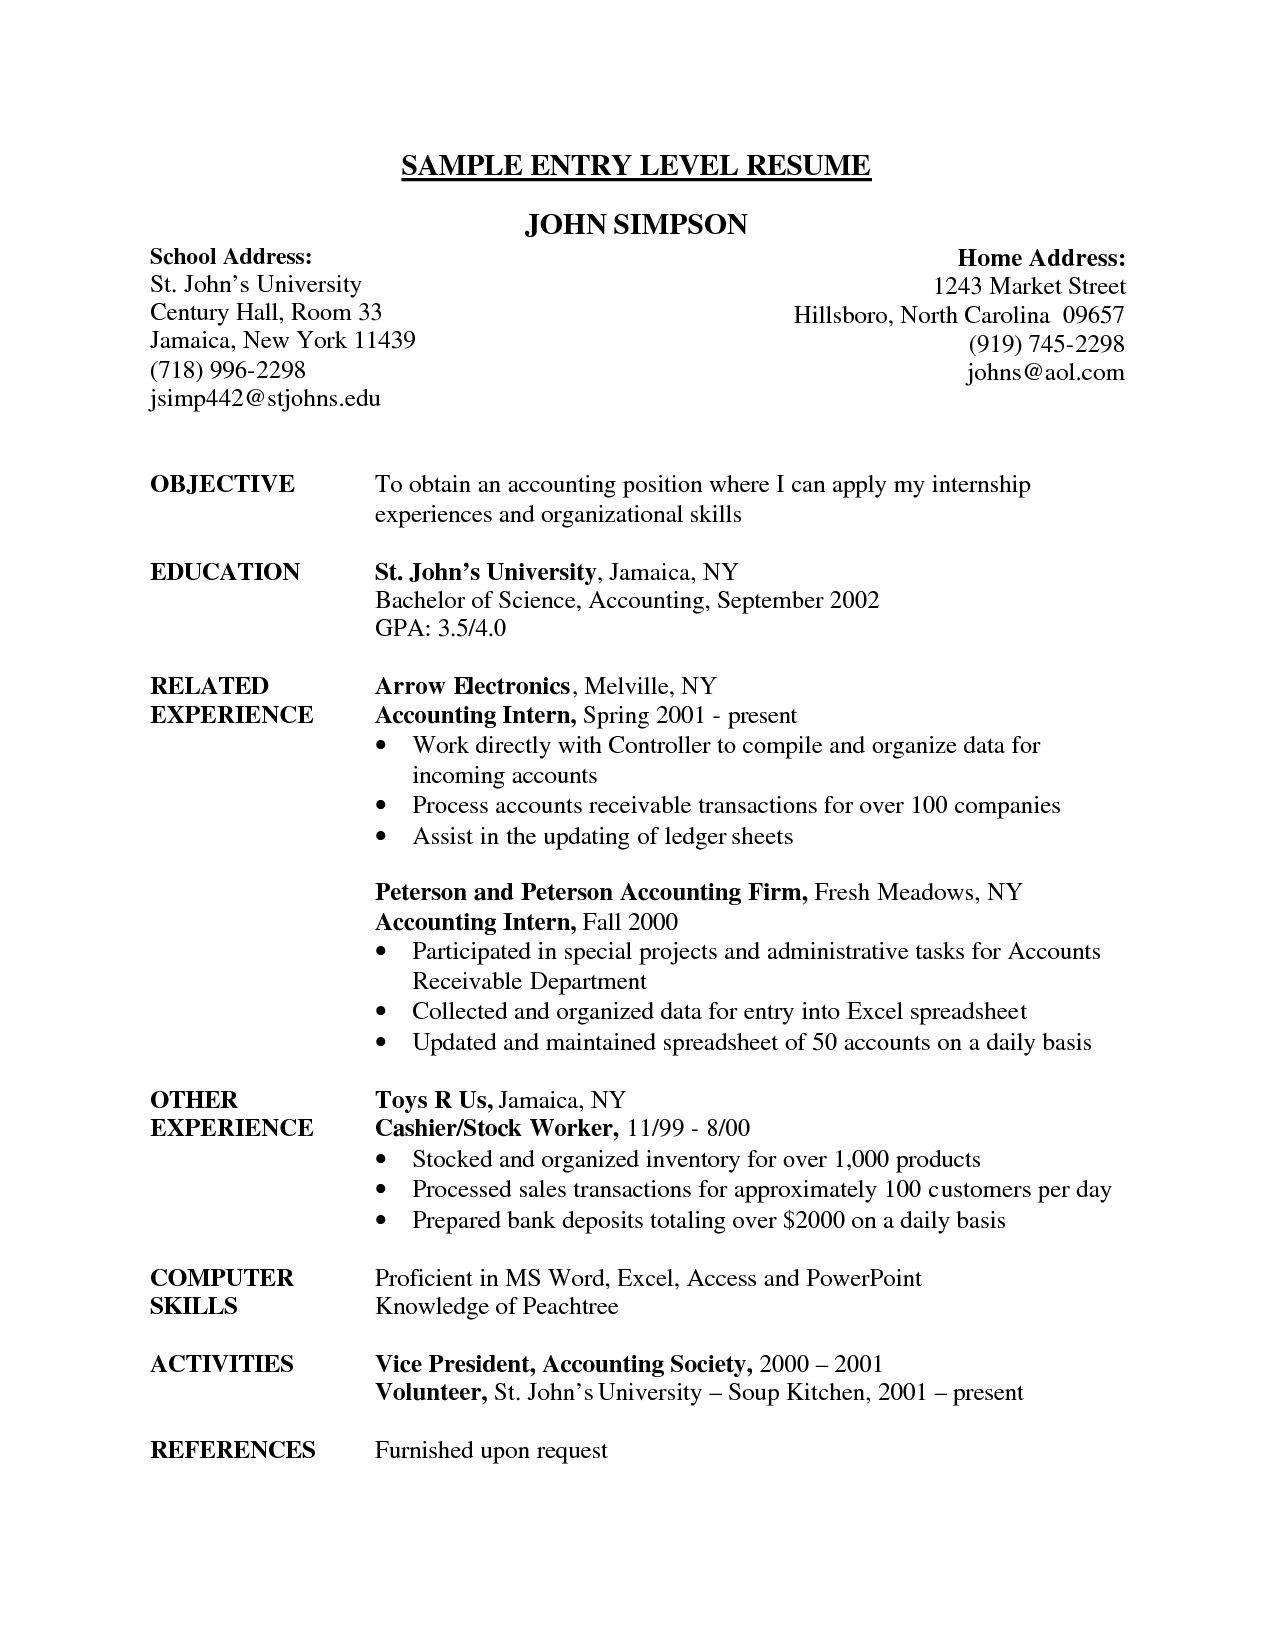 entry level job resume templates - Bolan.horizonconsulting.co